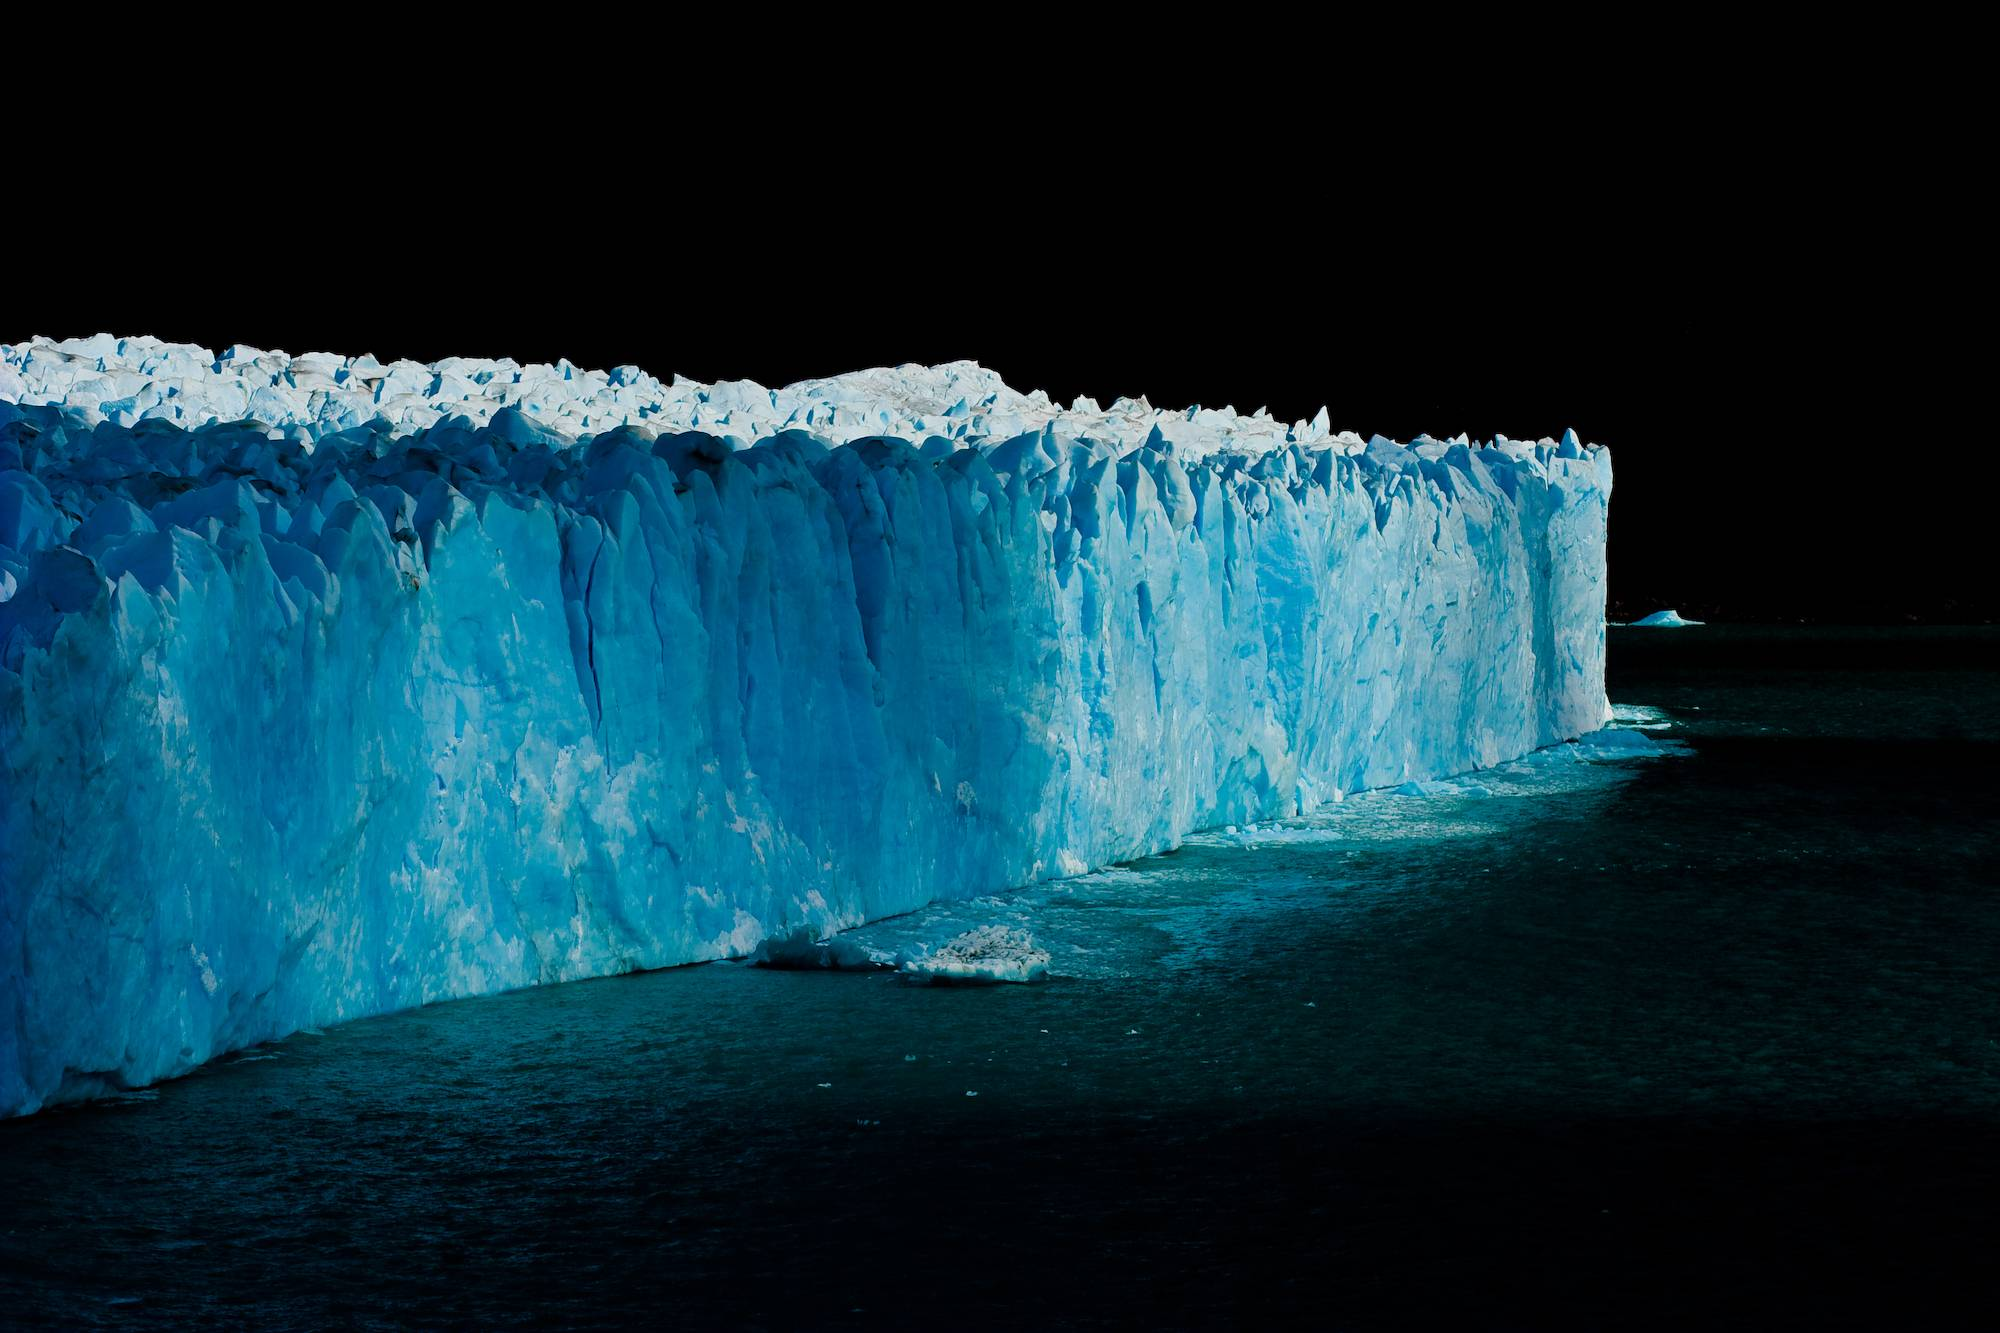 Blue Ice Glacier Wallpapers High Quality 30773 HD Pictures